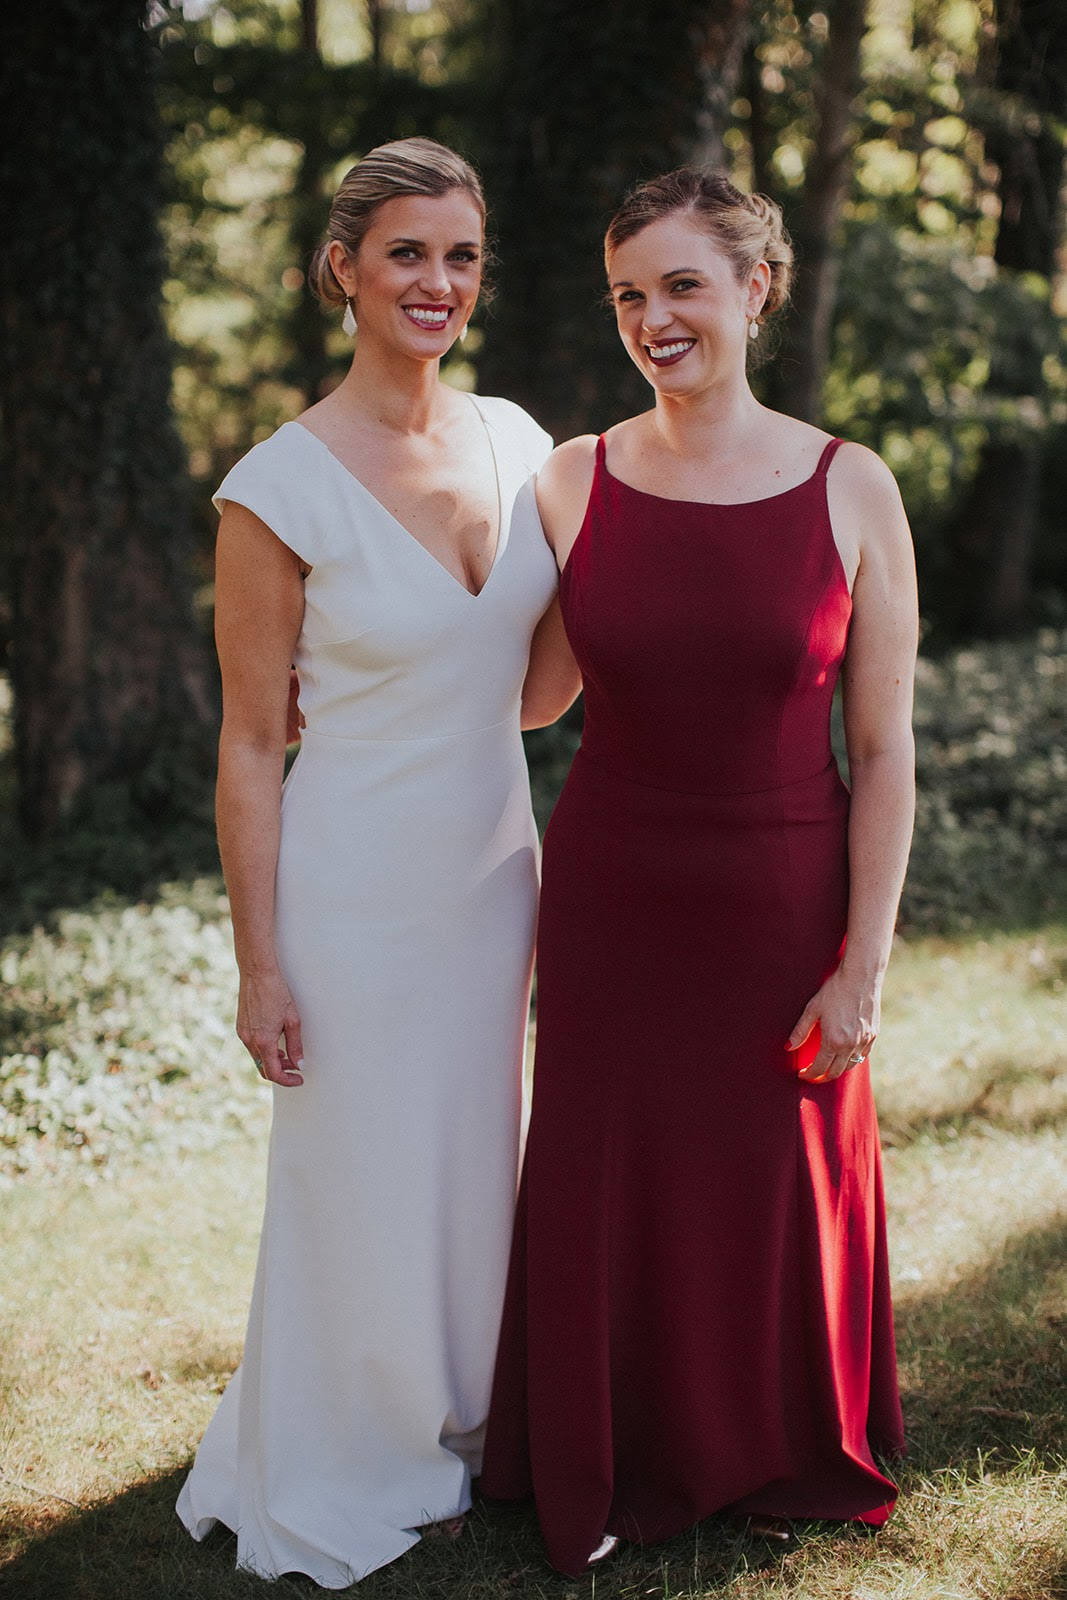 Bride and Bridesmaid wearing Dessy Group Style 6758 in burgundy crepe